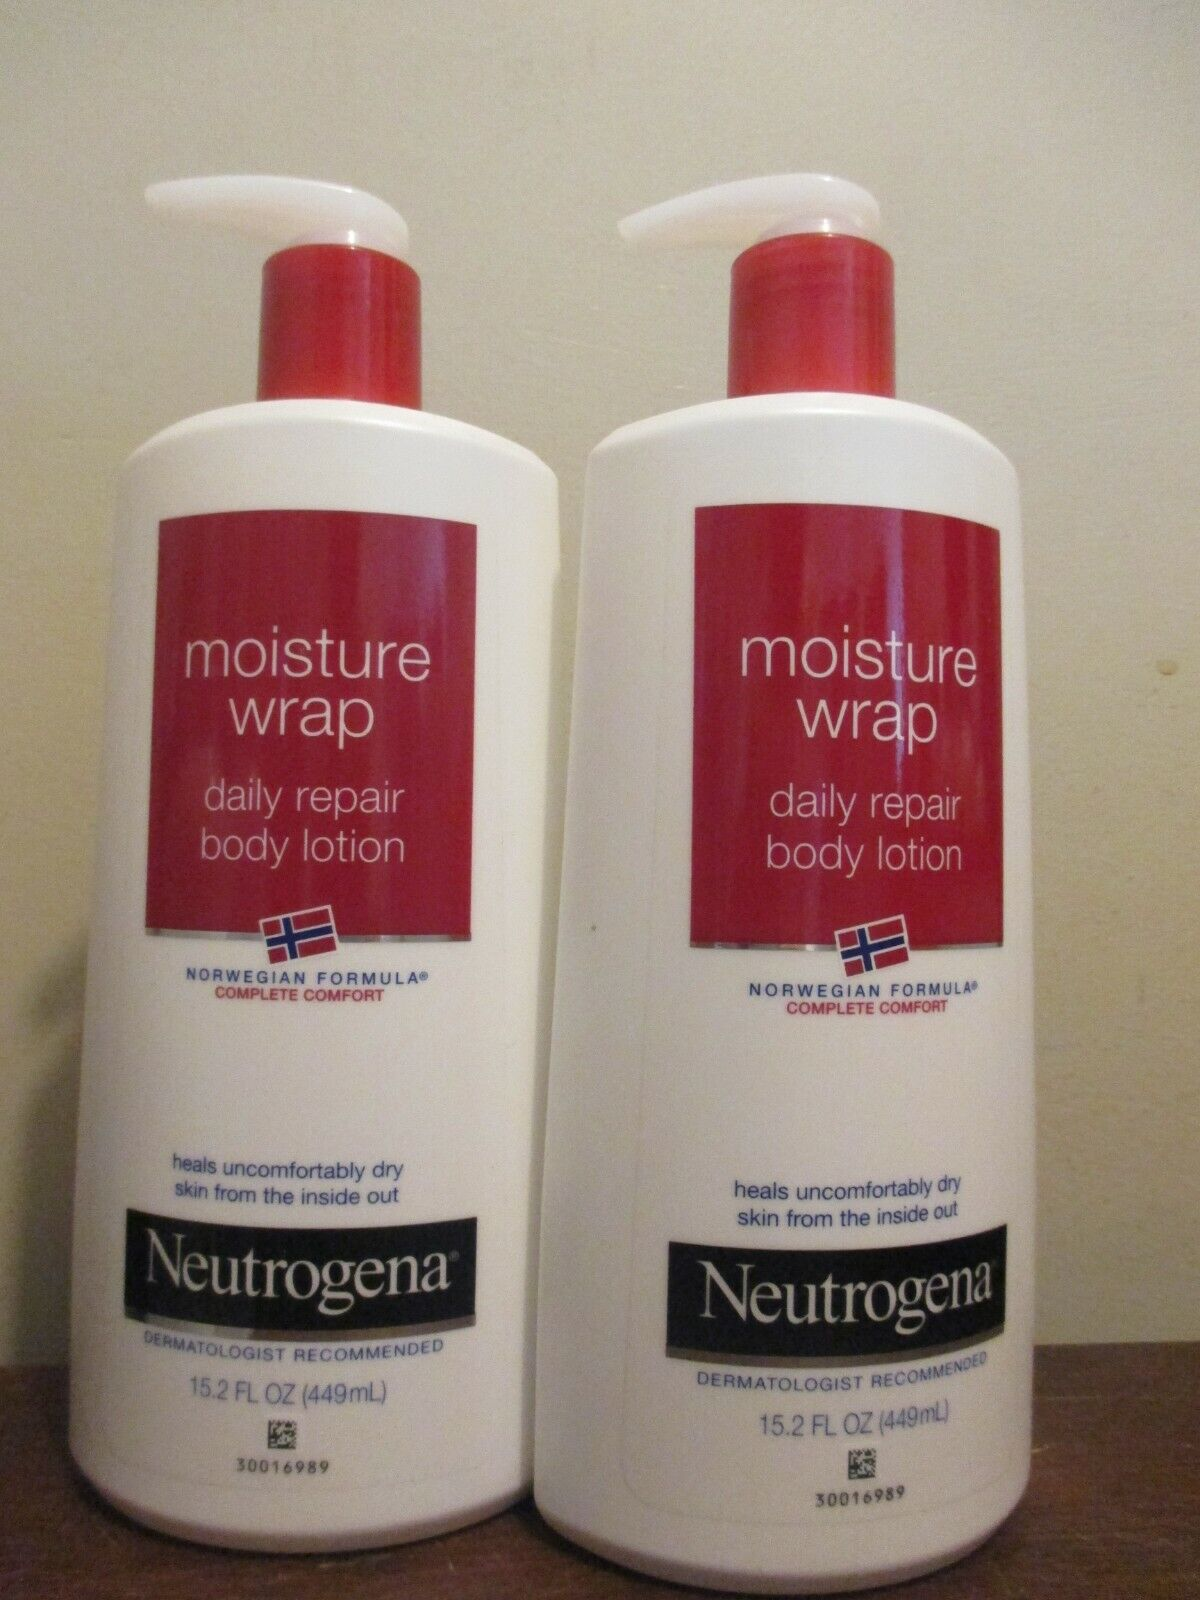 Neutrogena Norwegian Formula Moisture Wrap Daily Repair Bod